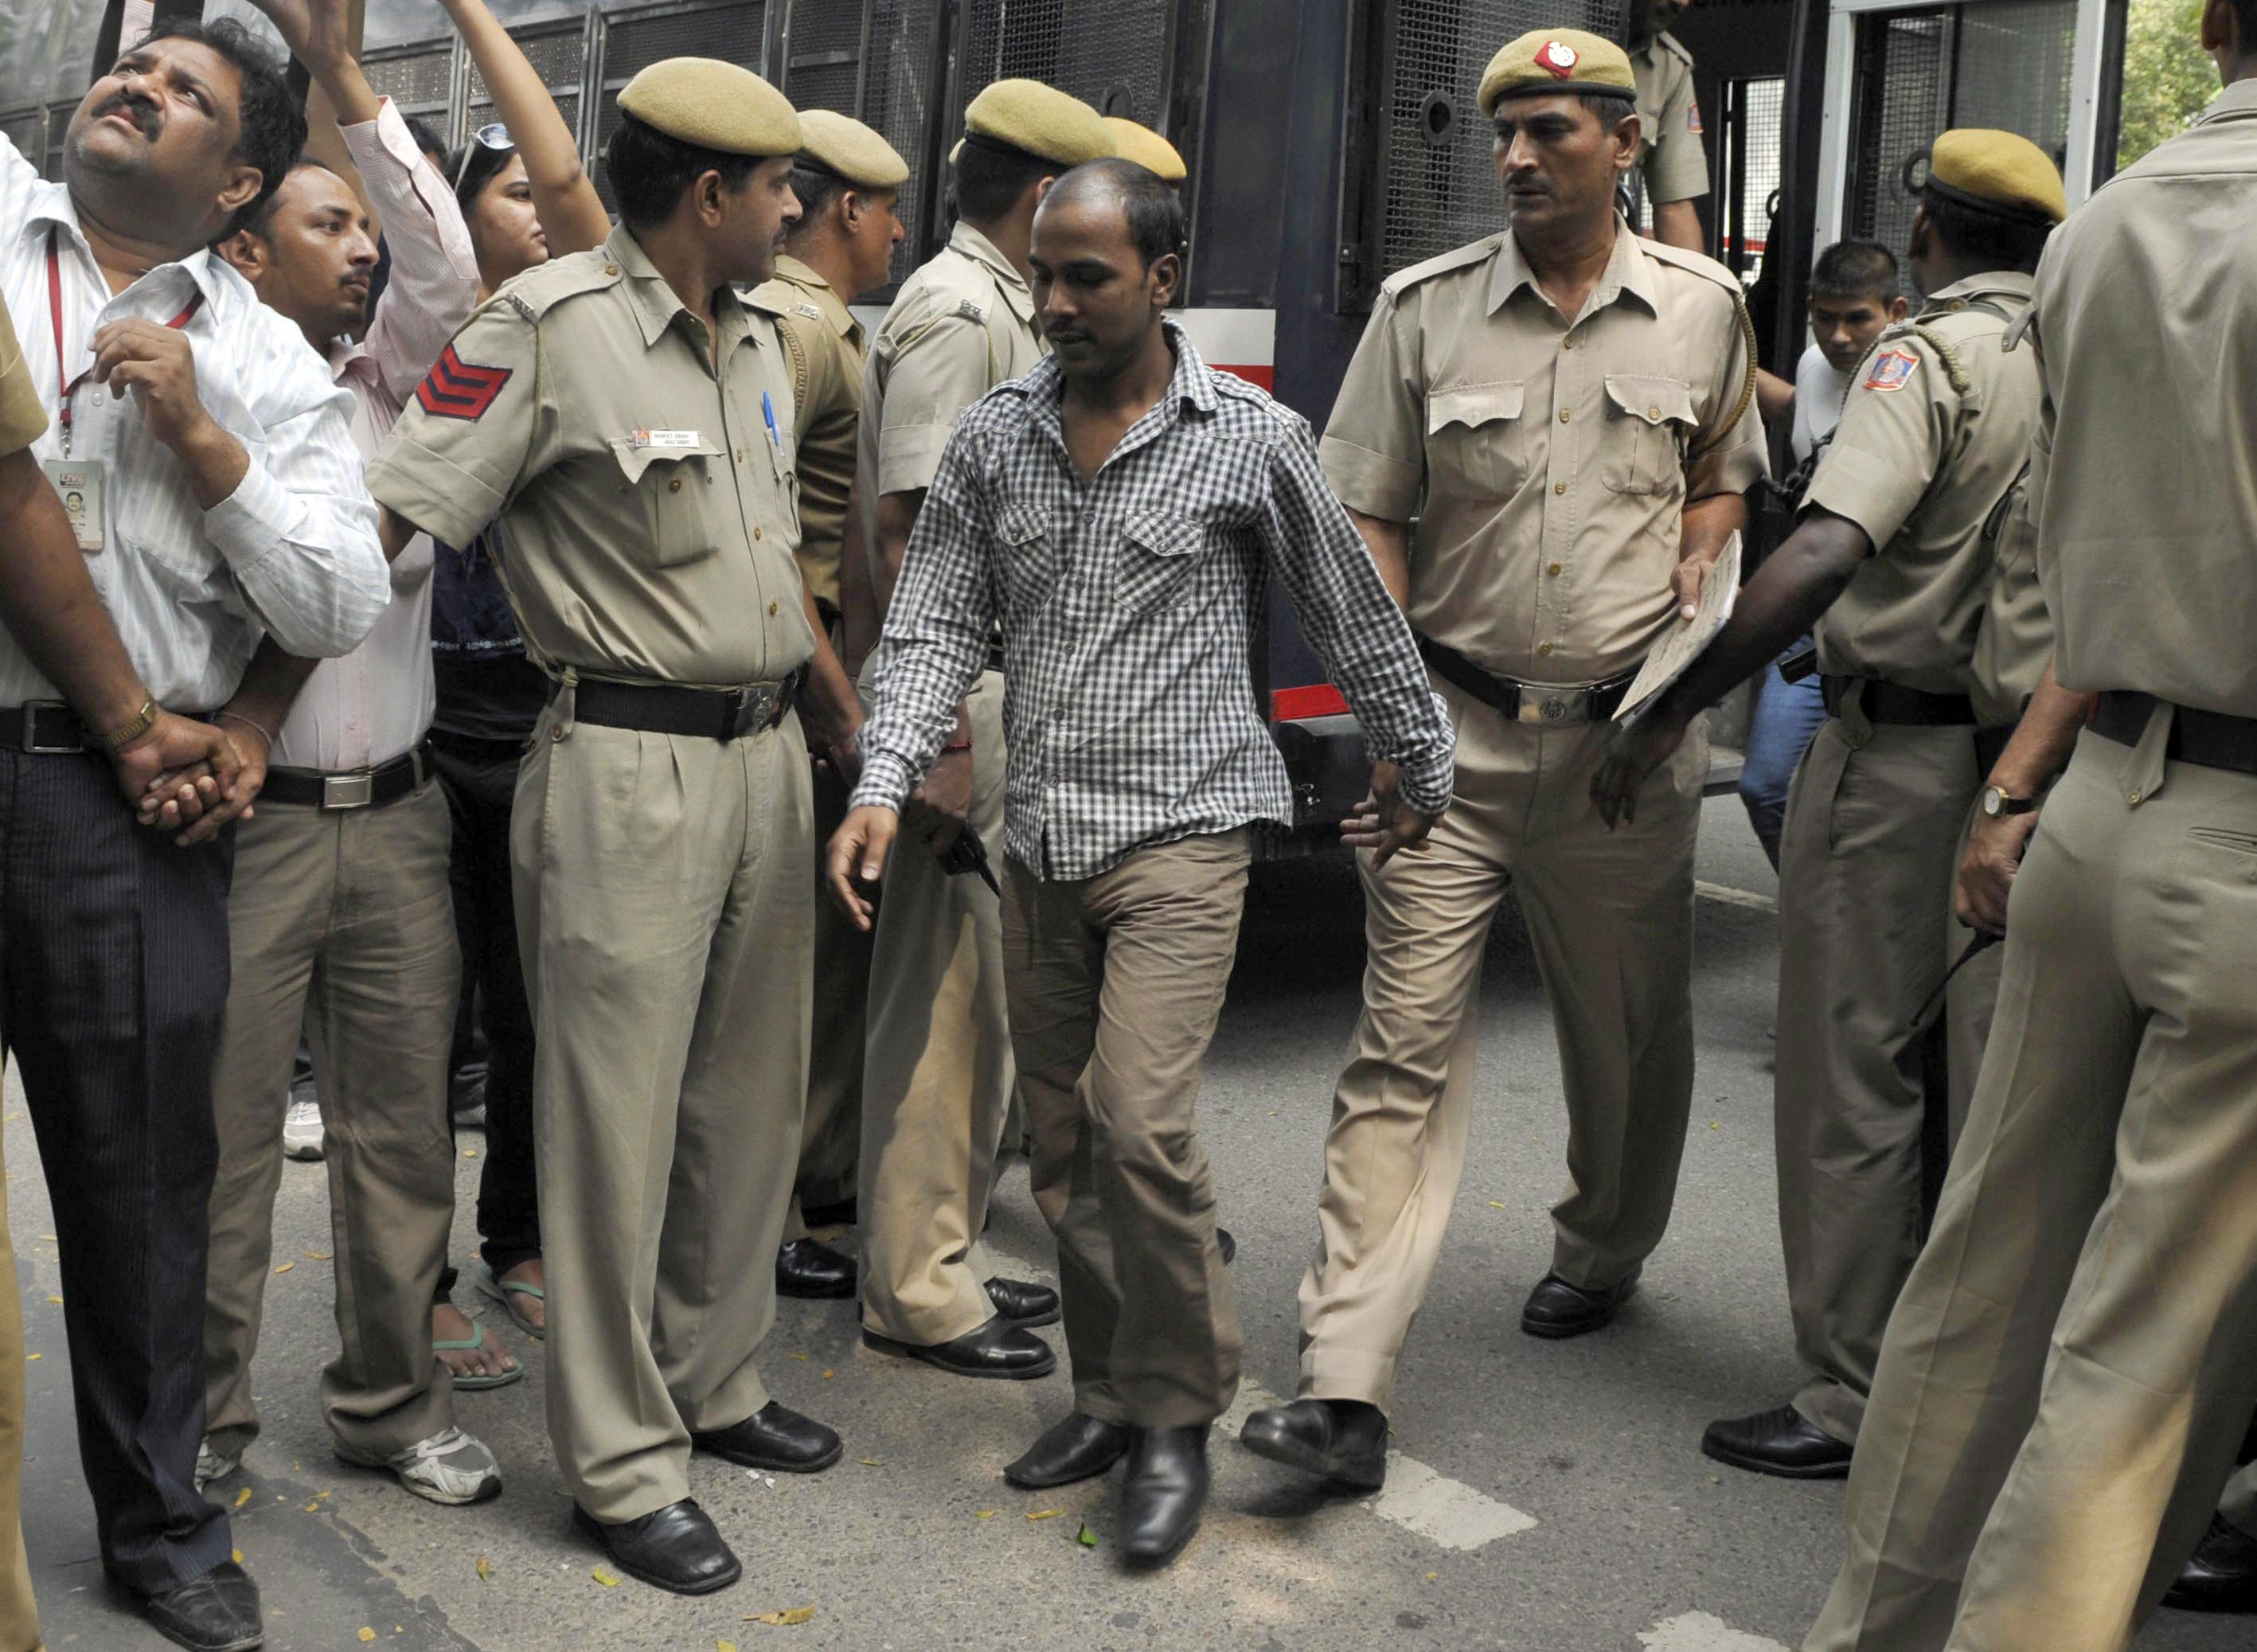 Mukesh Singh, center, one of the four men who were sentenced to death for the rape and murder of a young woman on a bus in December 2012, is escorted by police outside a court in New Delhi on Sept. 24, 2013